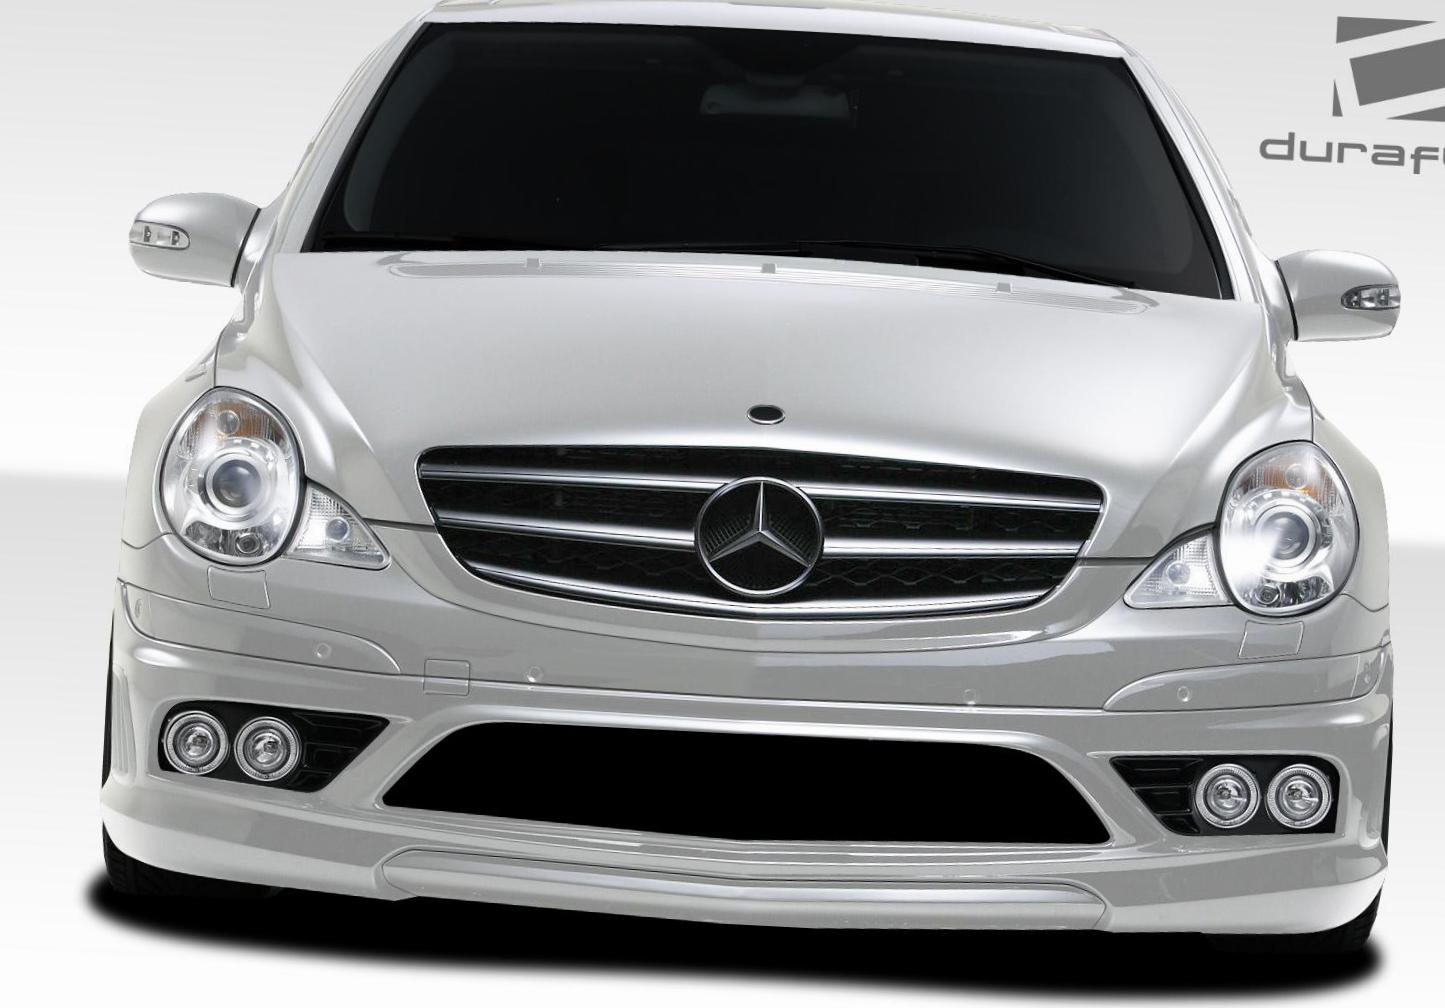 R-Class (W251) Mercedes reviews 2013